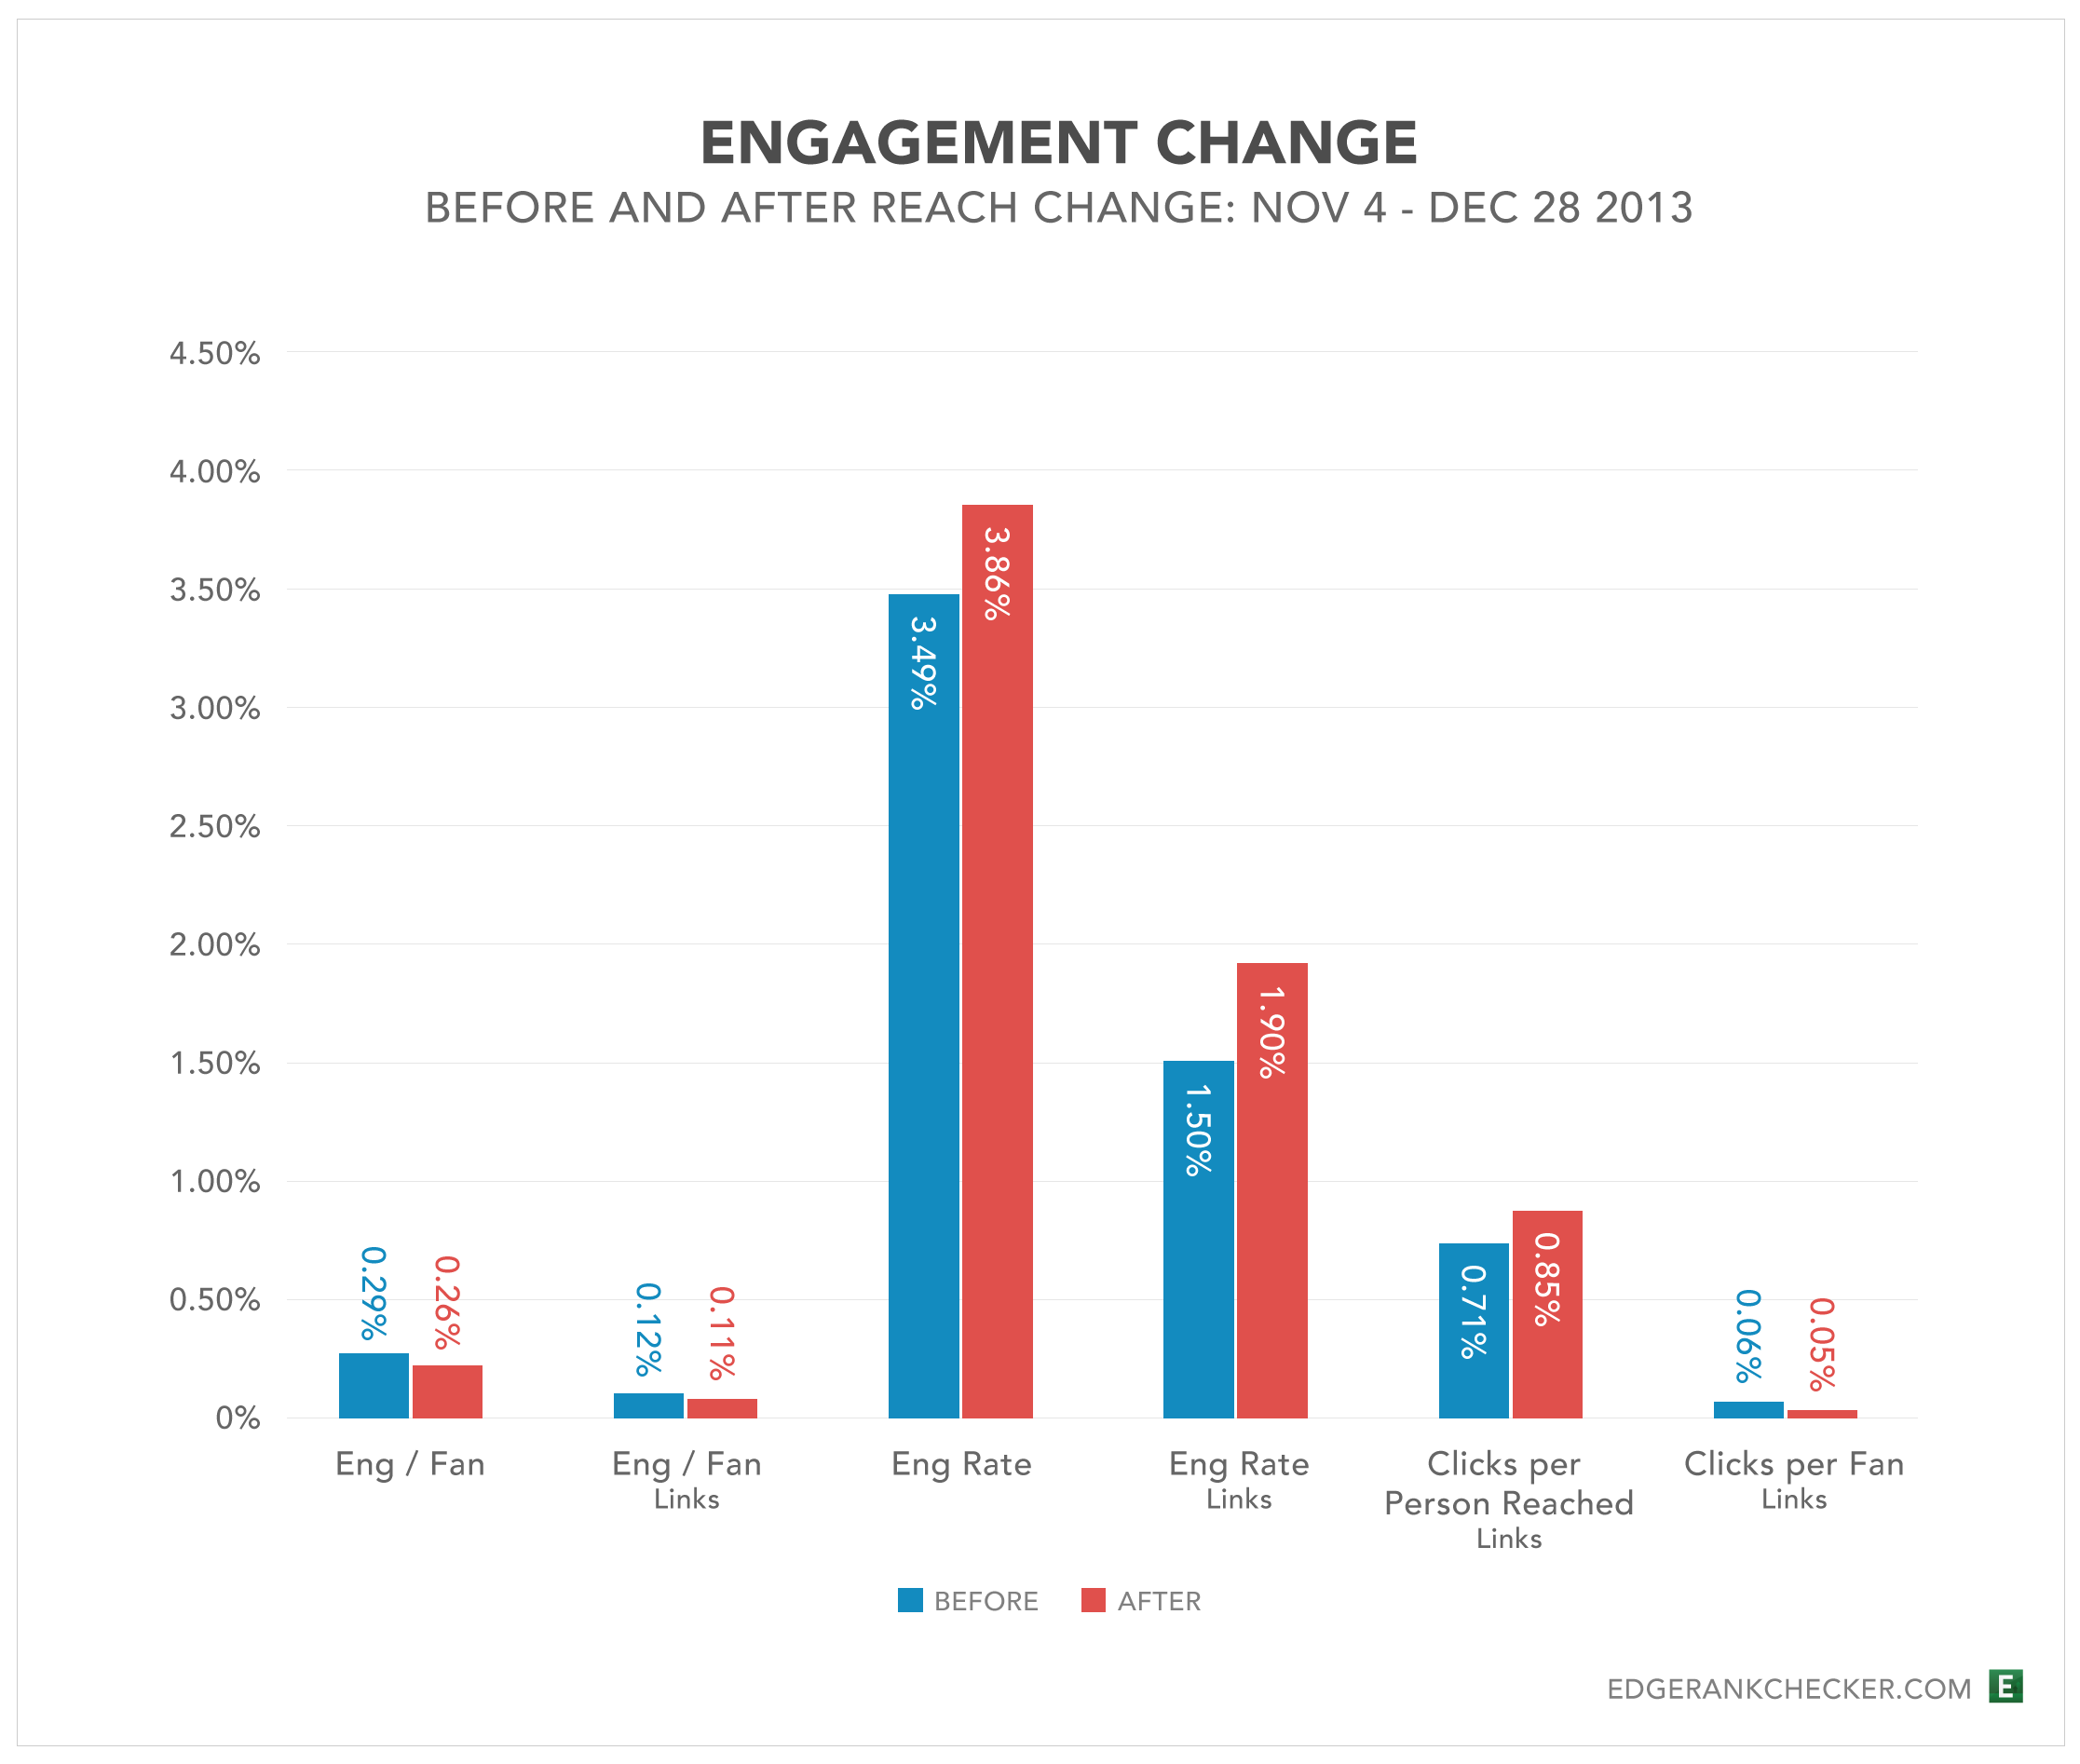 Engagement change